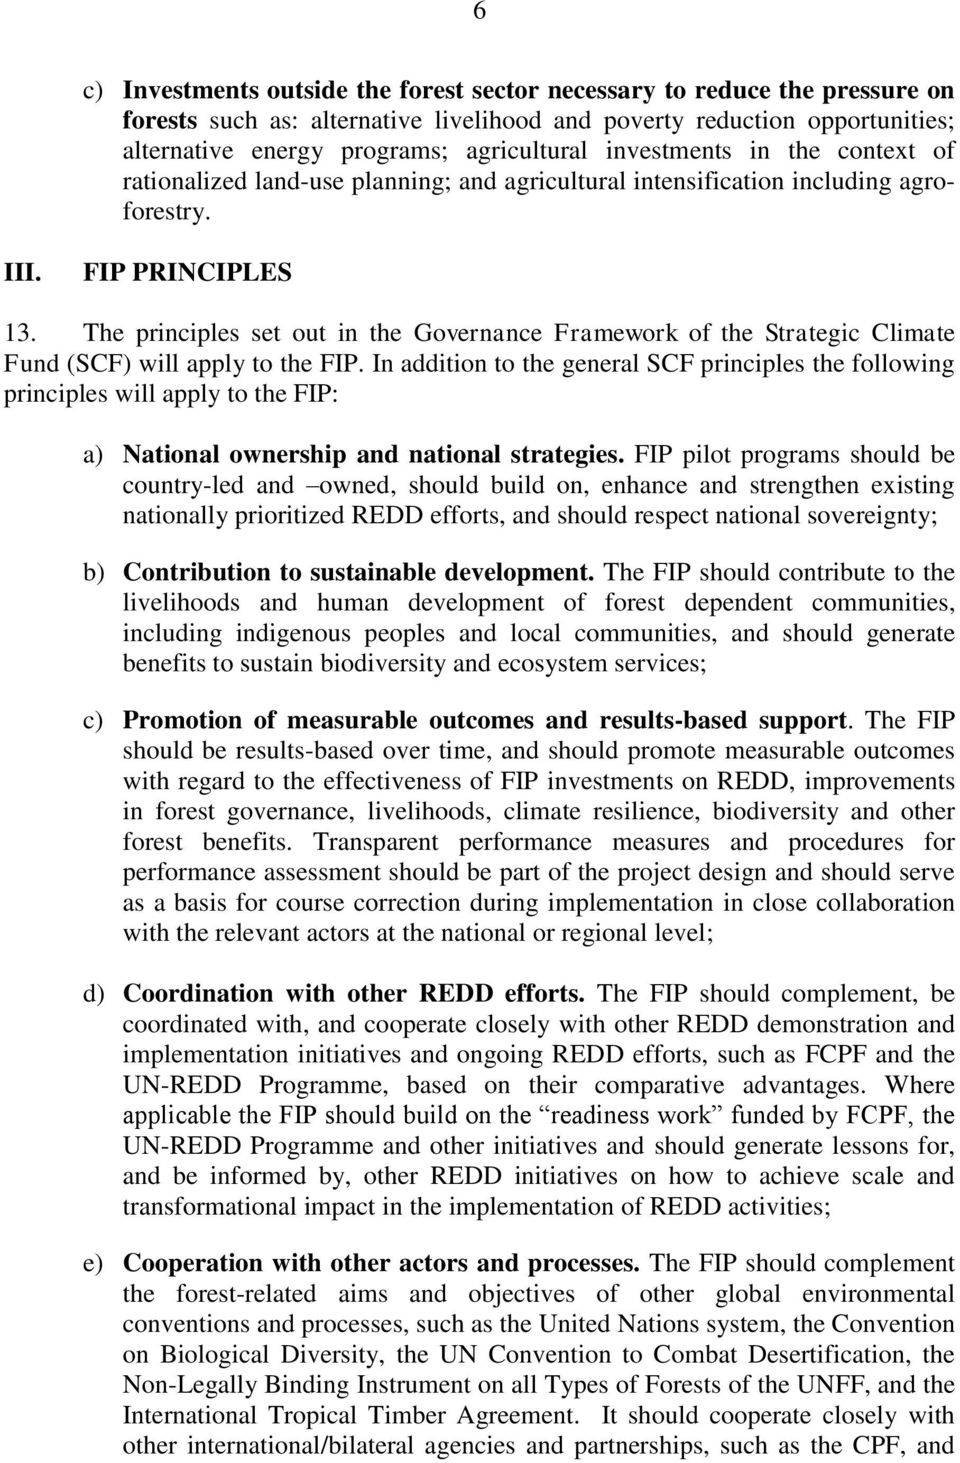 The principles set out in the Governance Framework of the Strategic Climate Fund (SCF) will apply to the FIP.